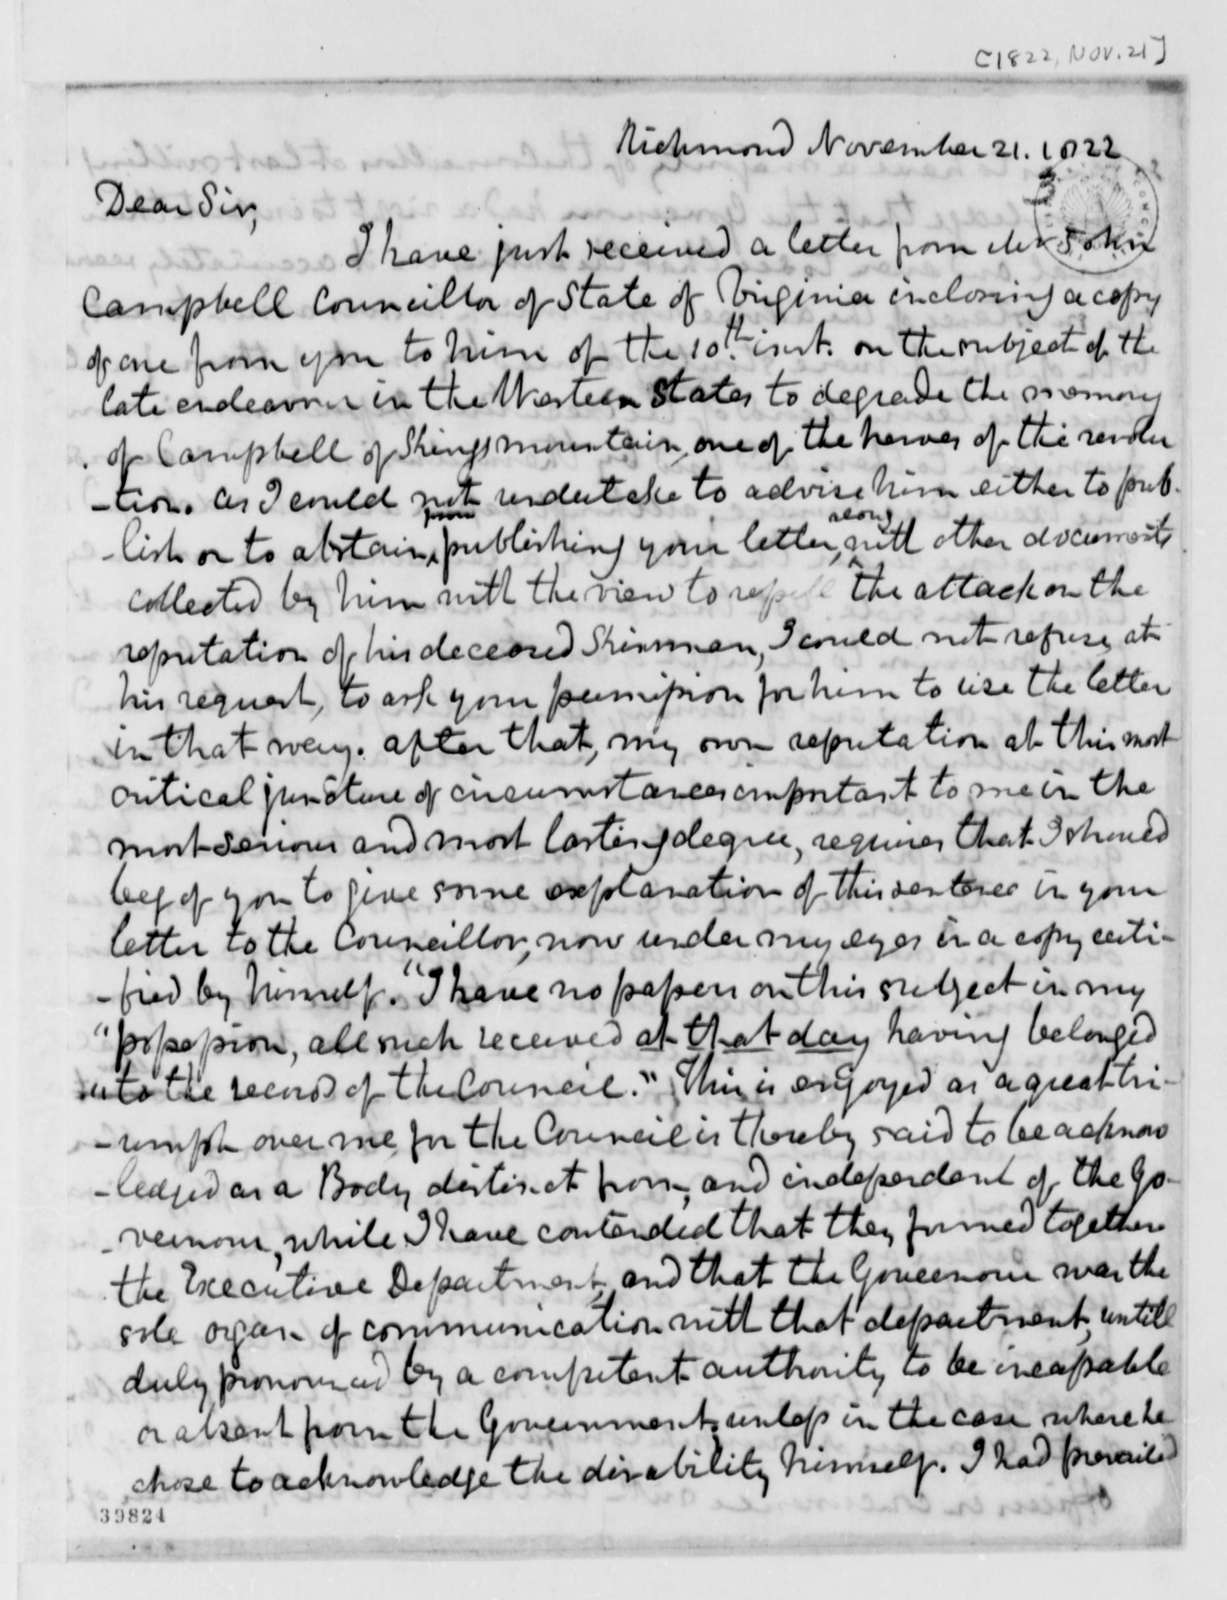 Thomas Mann Randolph, Jr. to Thomas Jefferson, November 21, 1822